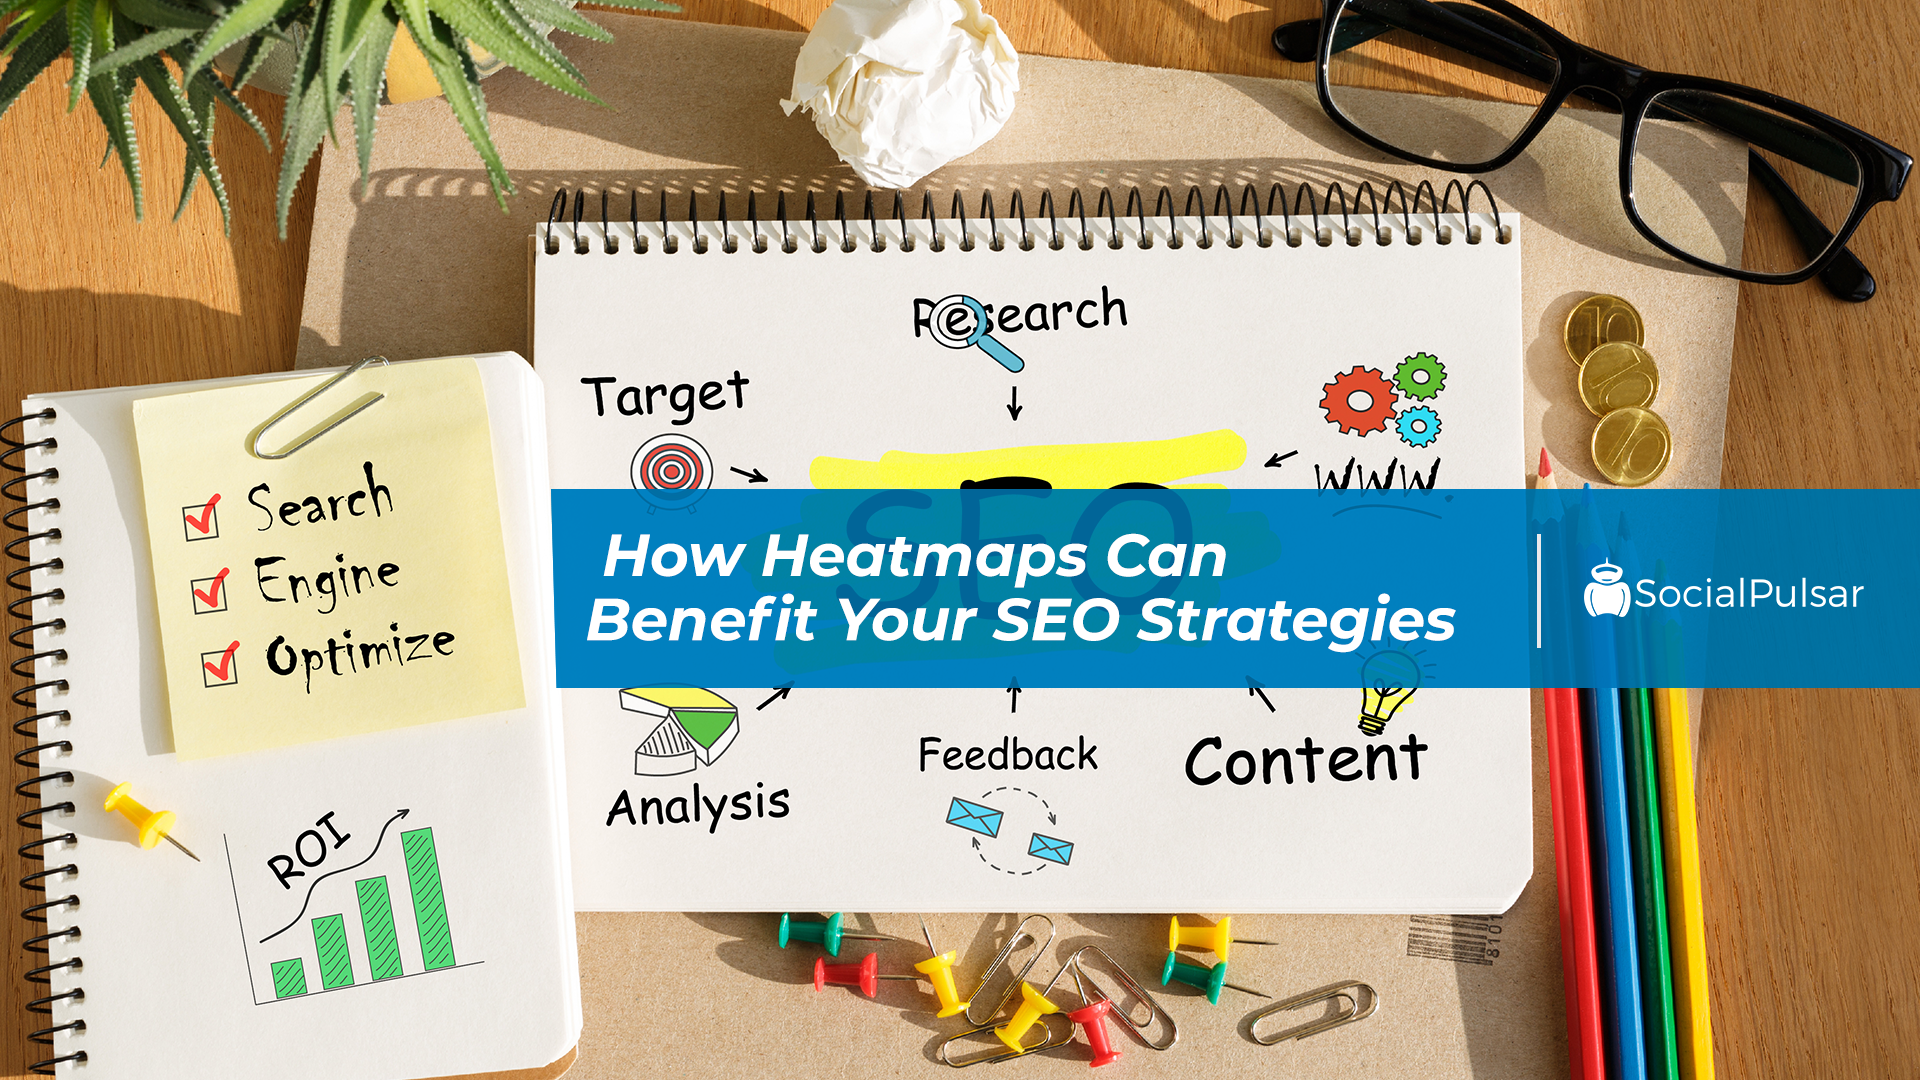 How Heatmaps Can Benefit Your SEO Strategies?